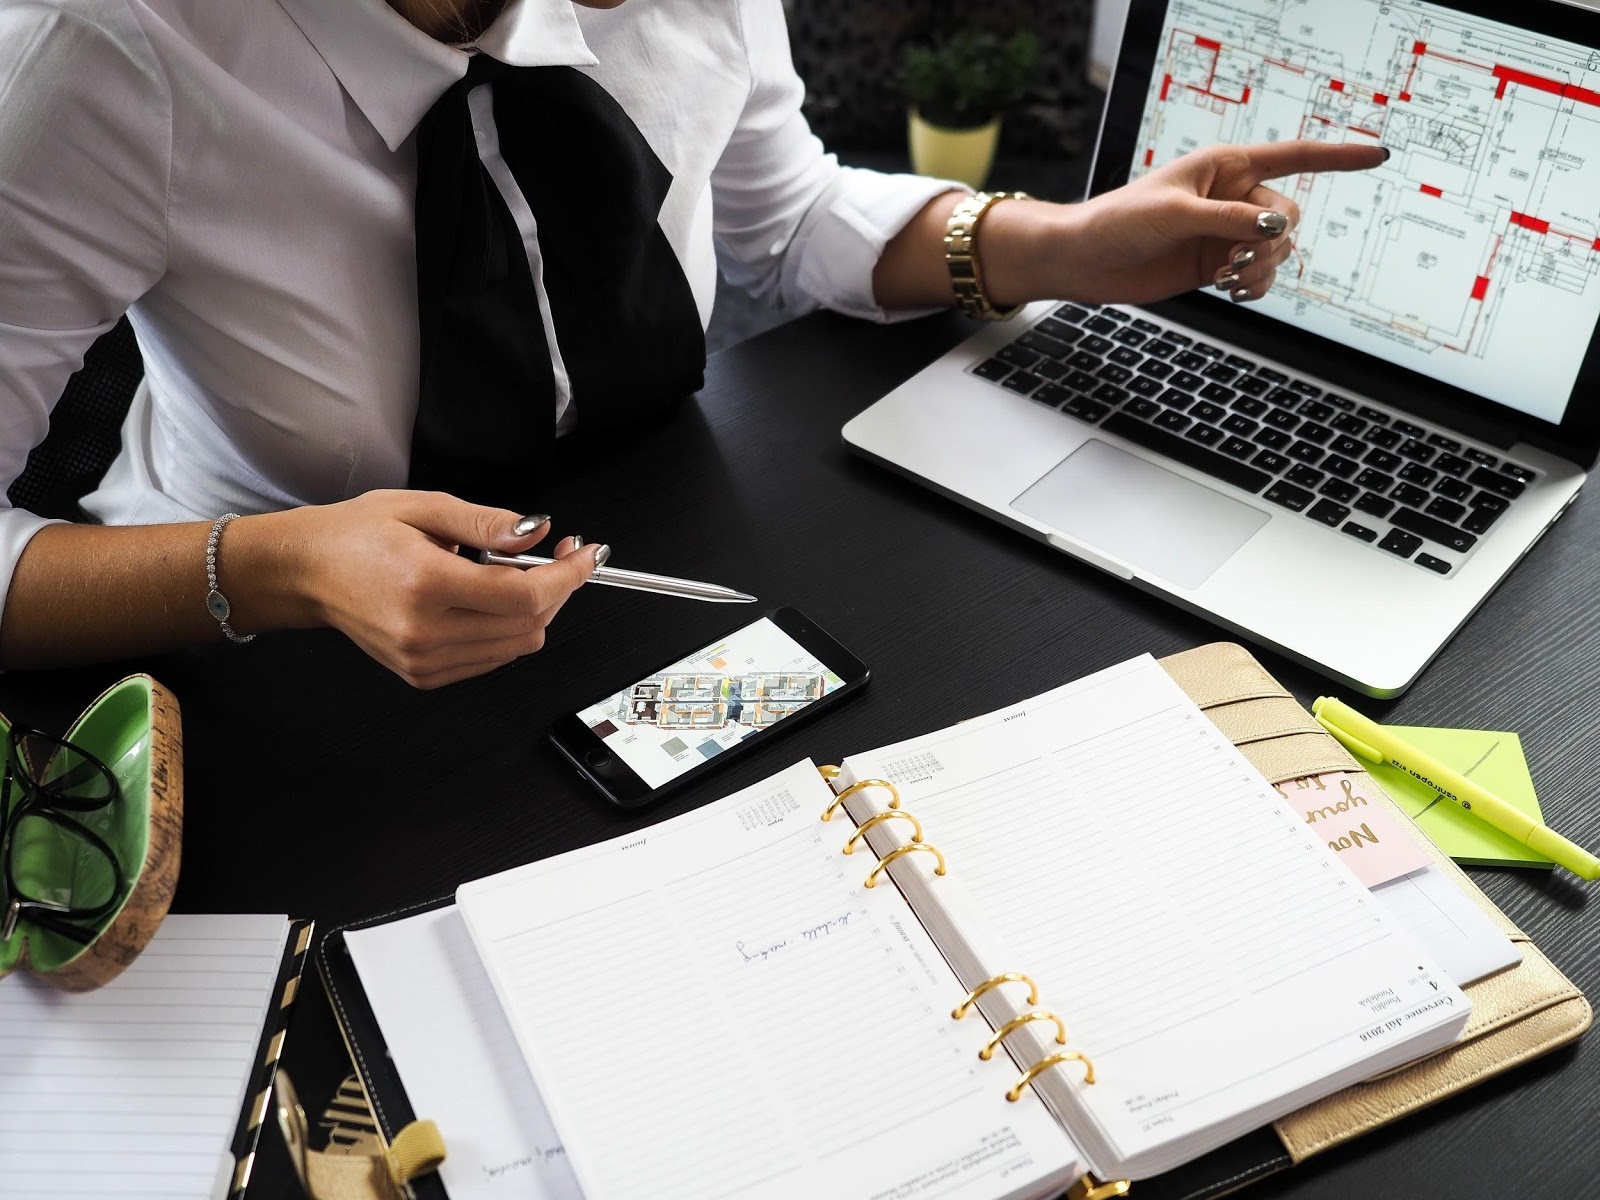 Tips on How To Develop An Excellent Business Plan